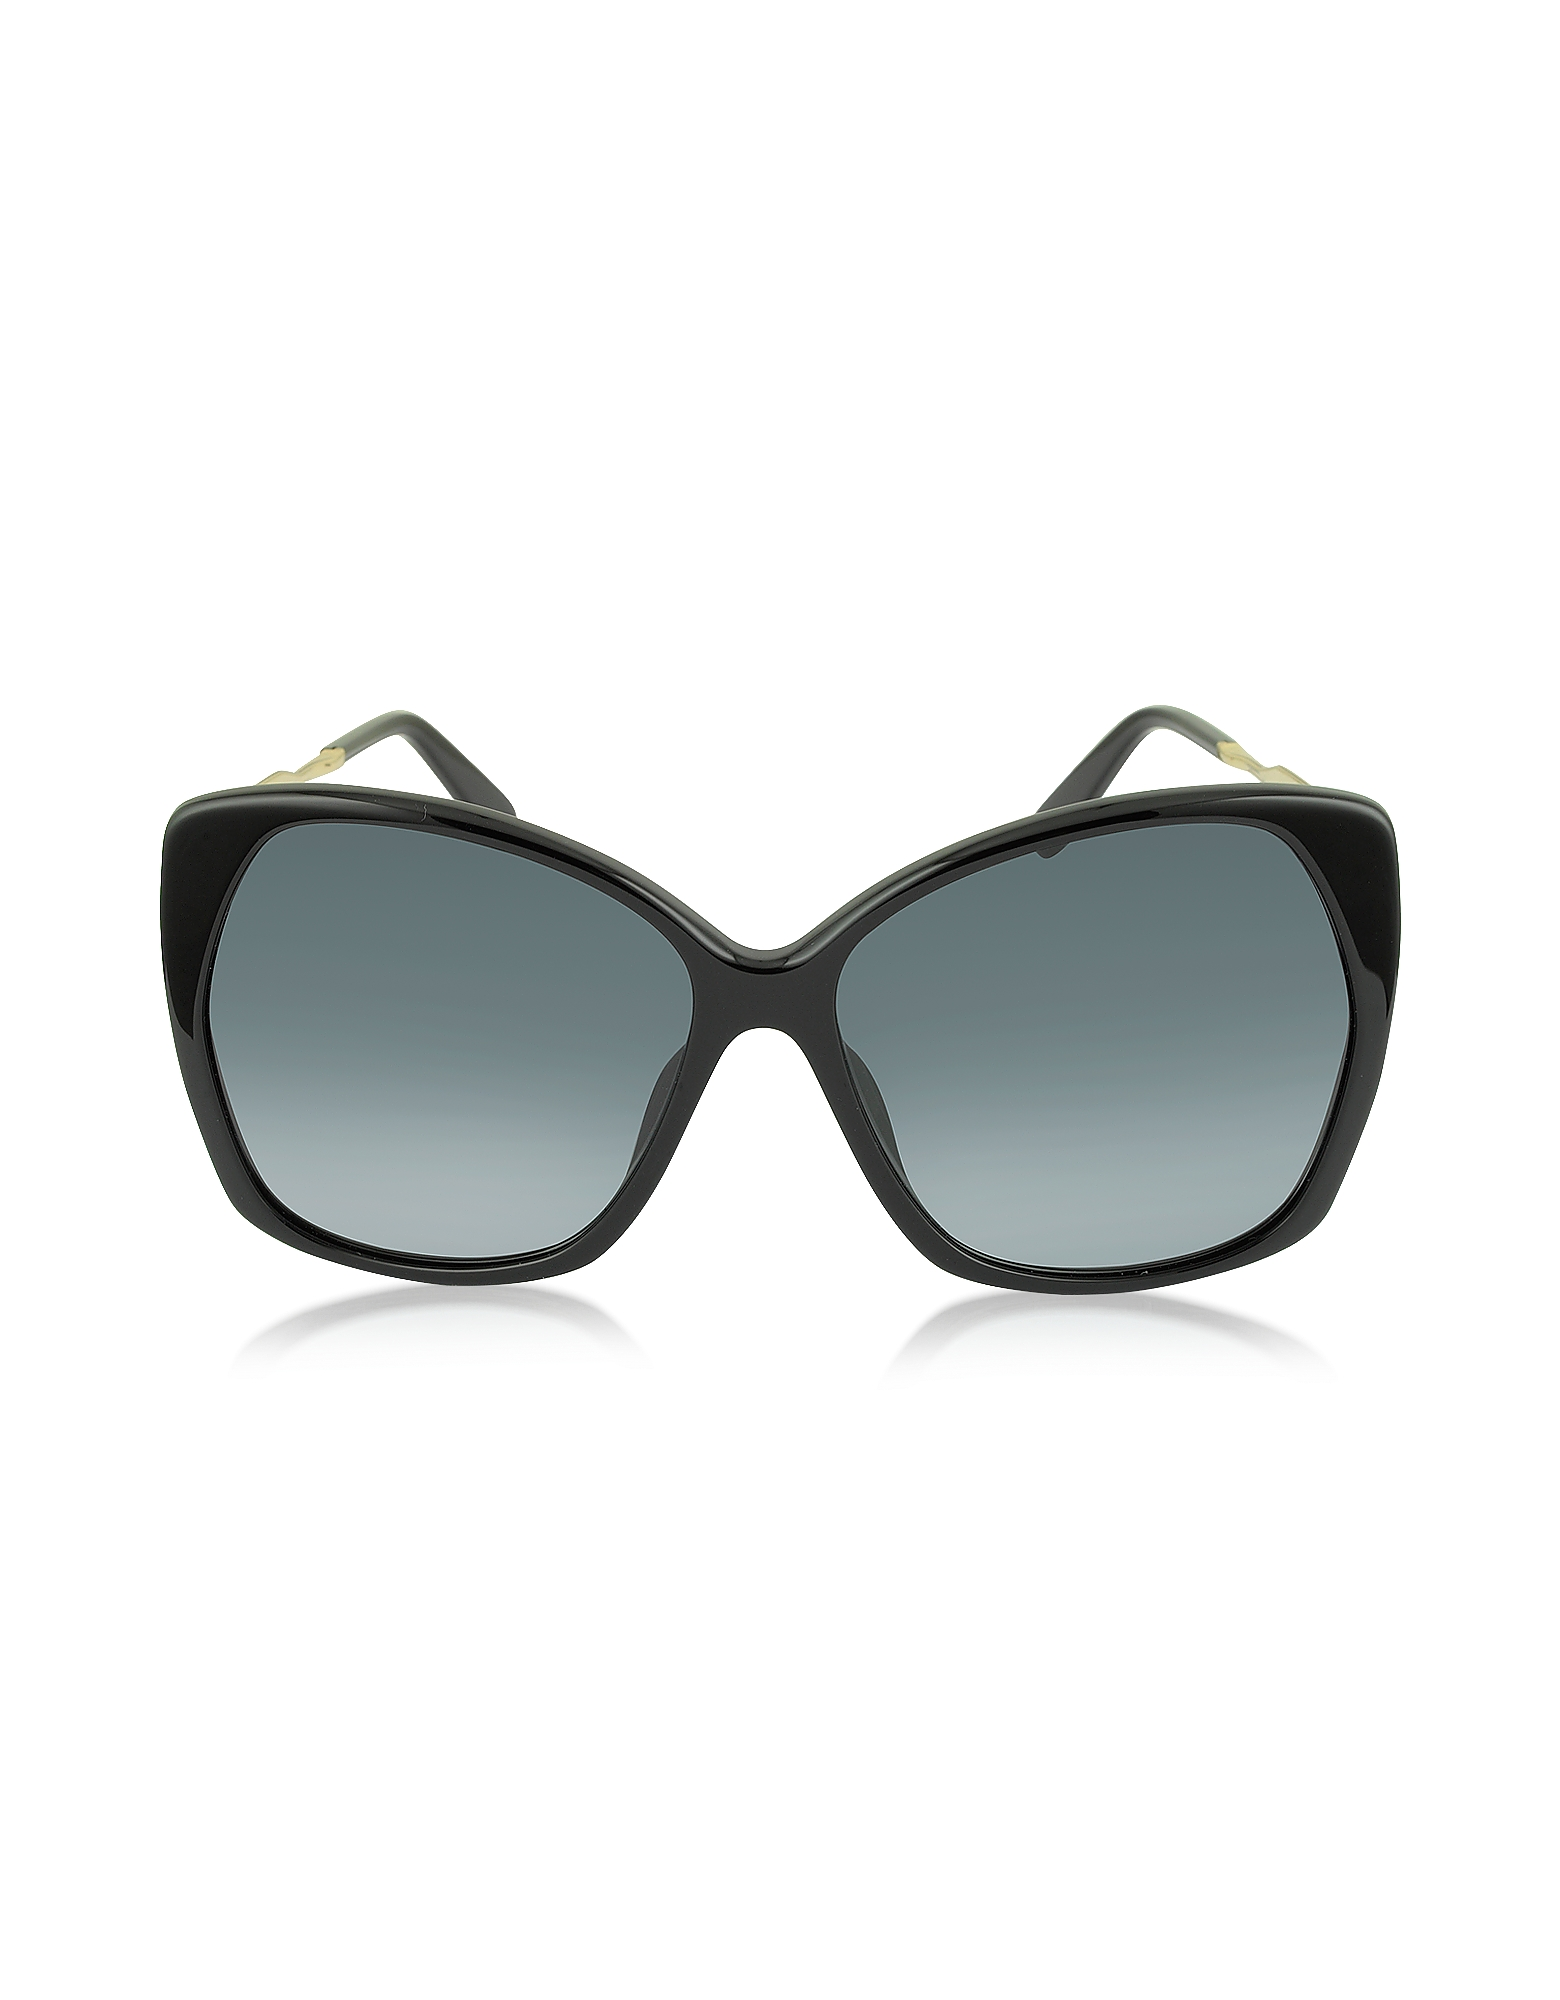 Marc Jacobs Sunglasses, MJ 614/S Square Oversized Women's Sunglasses